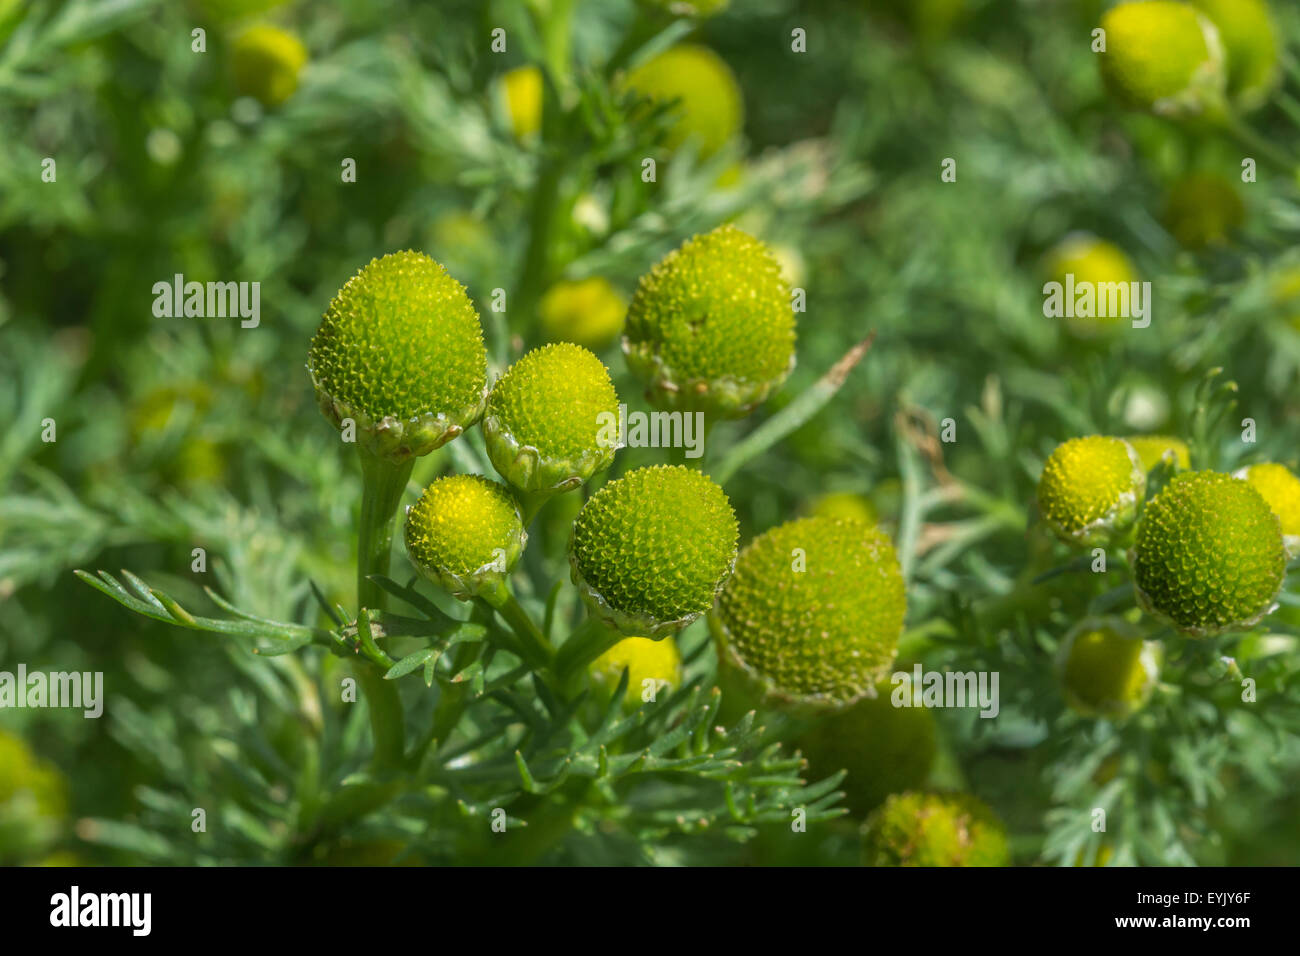 Pineapple Weed Matricaria Discoidea Plant In Flower The Yellow